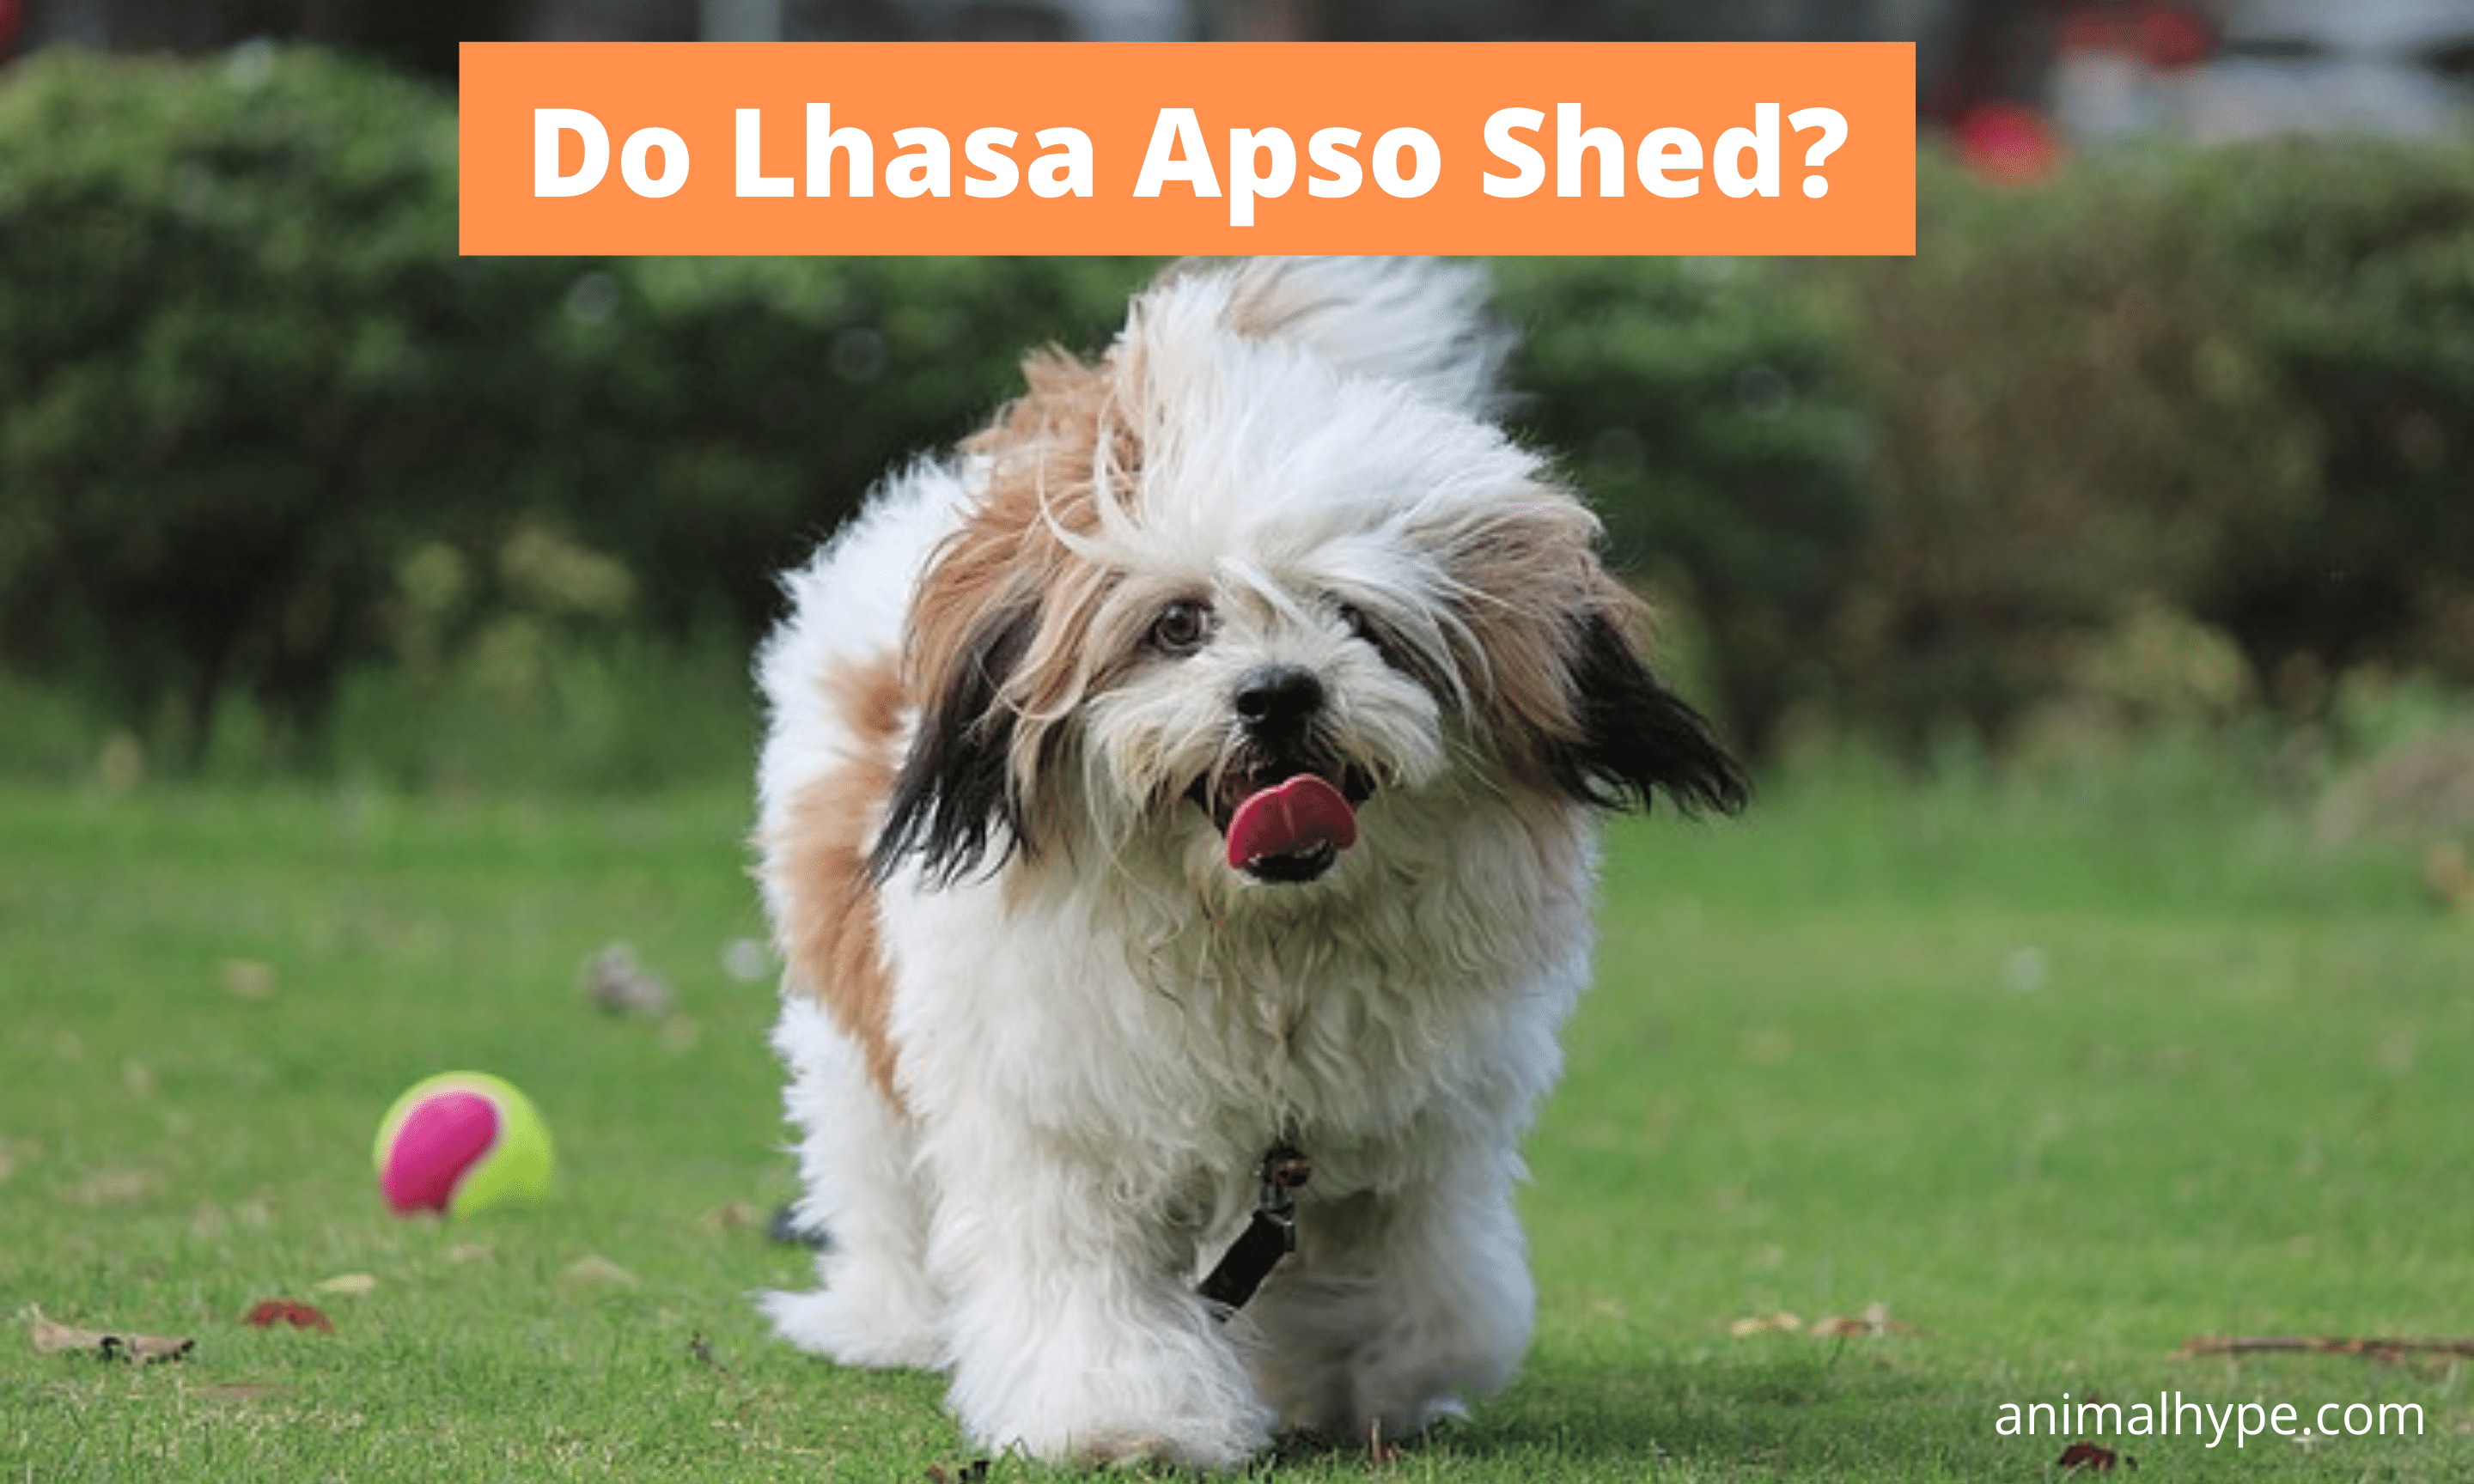 Do Lhasa Apso Shed